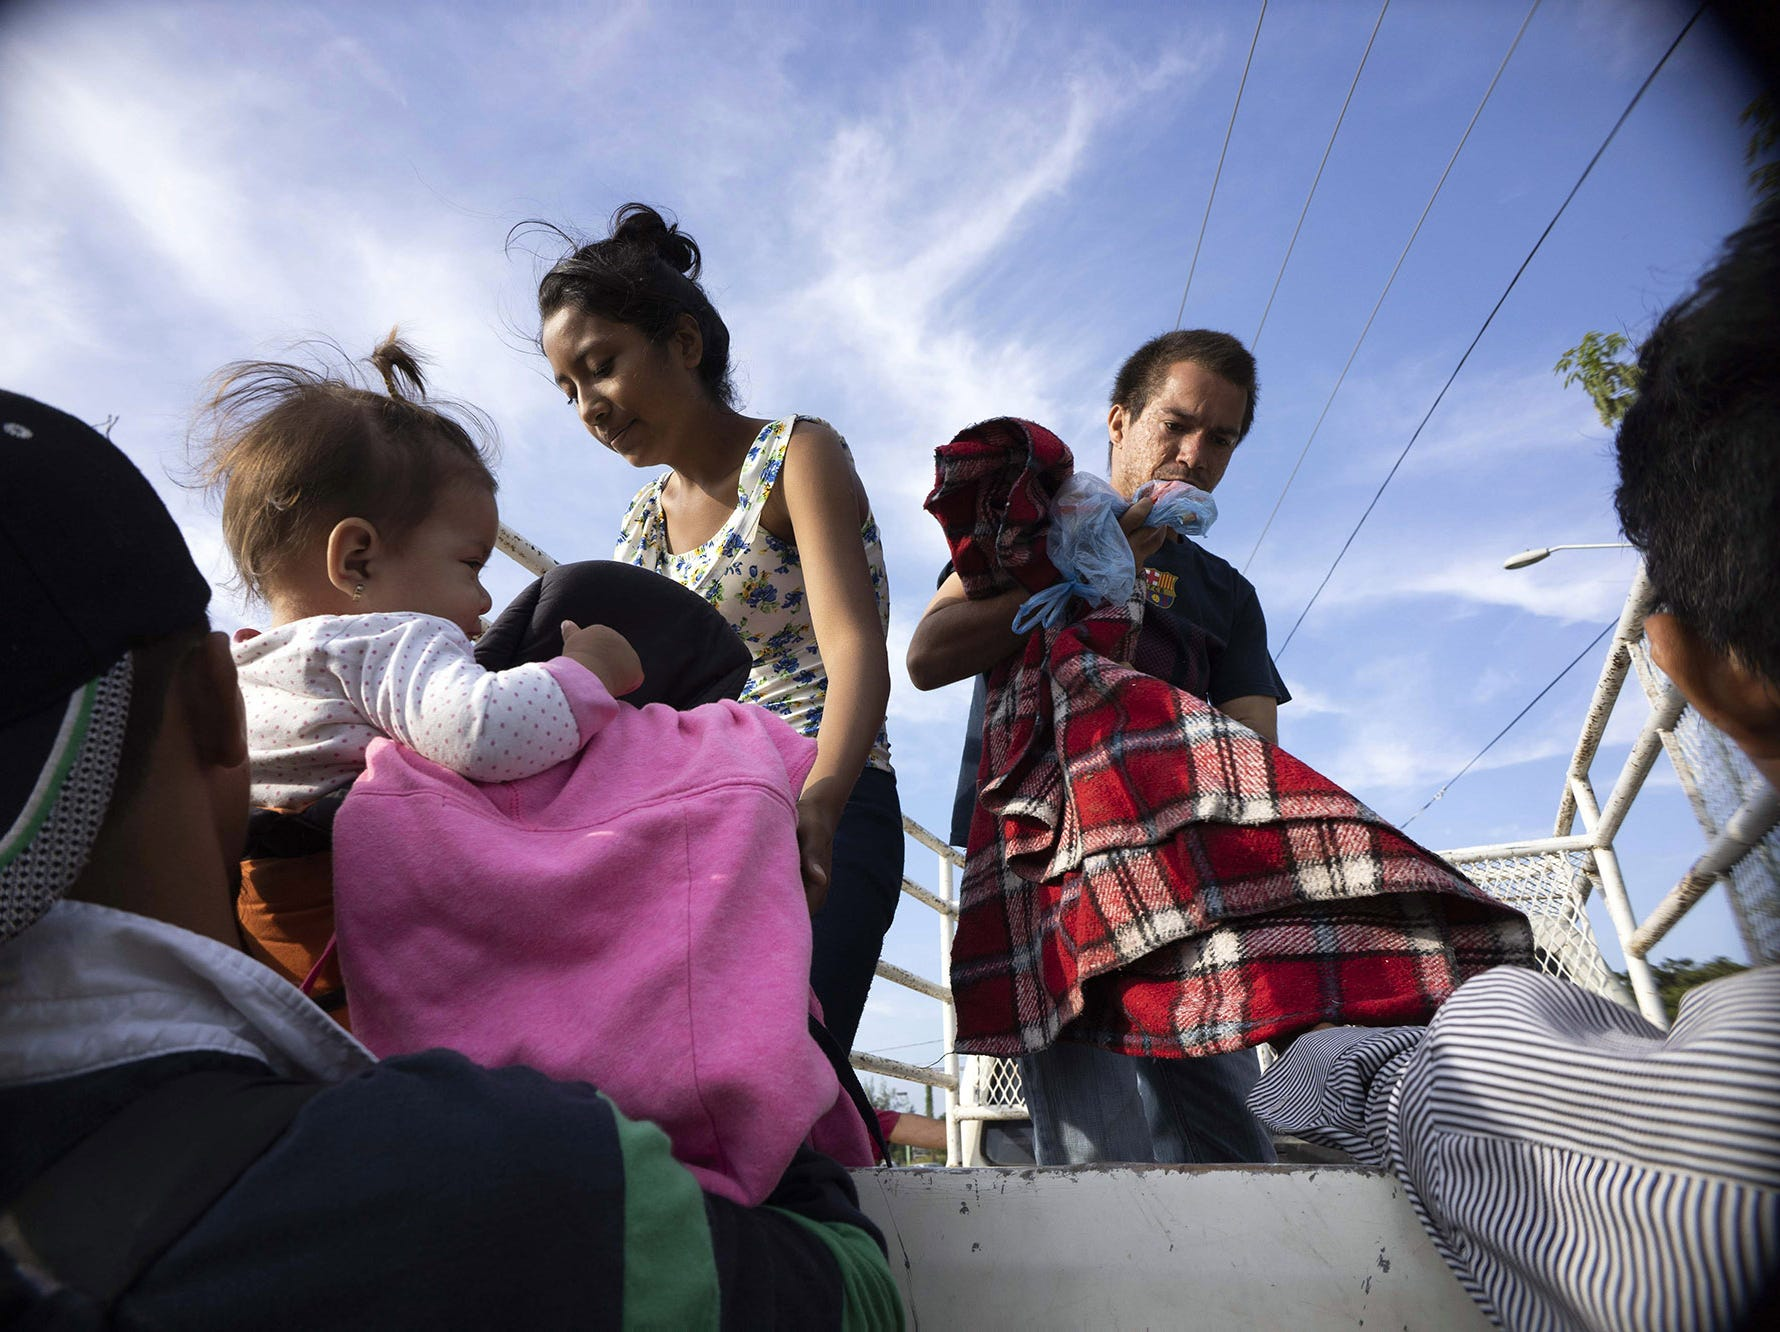 Thousands of Central American migrants traveling in a caravan that President Trump wants to stop at the US border began arriving in the city of Juchitan de Zaragoza before dawn on Tuesday, Oct. 30, 2018 in the state of Oaxaca in southern Mexico.